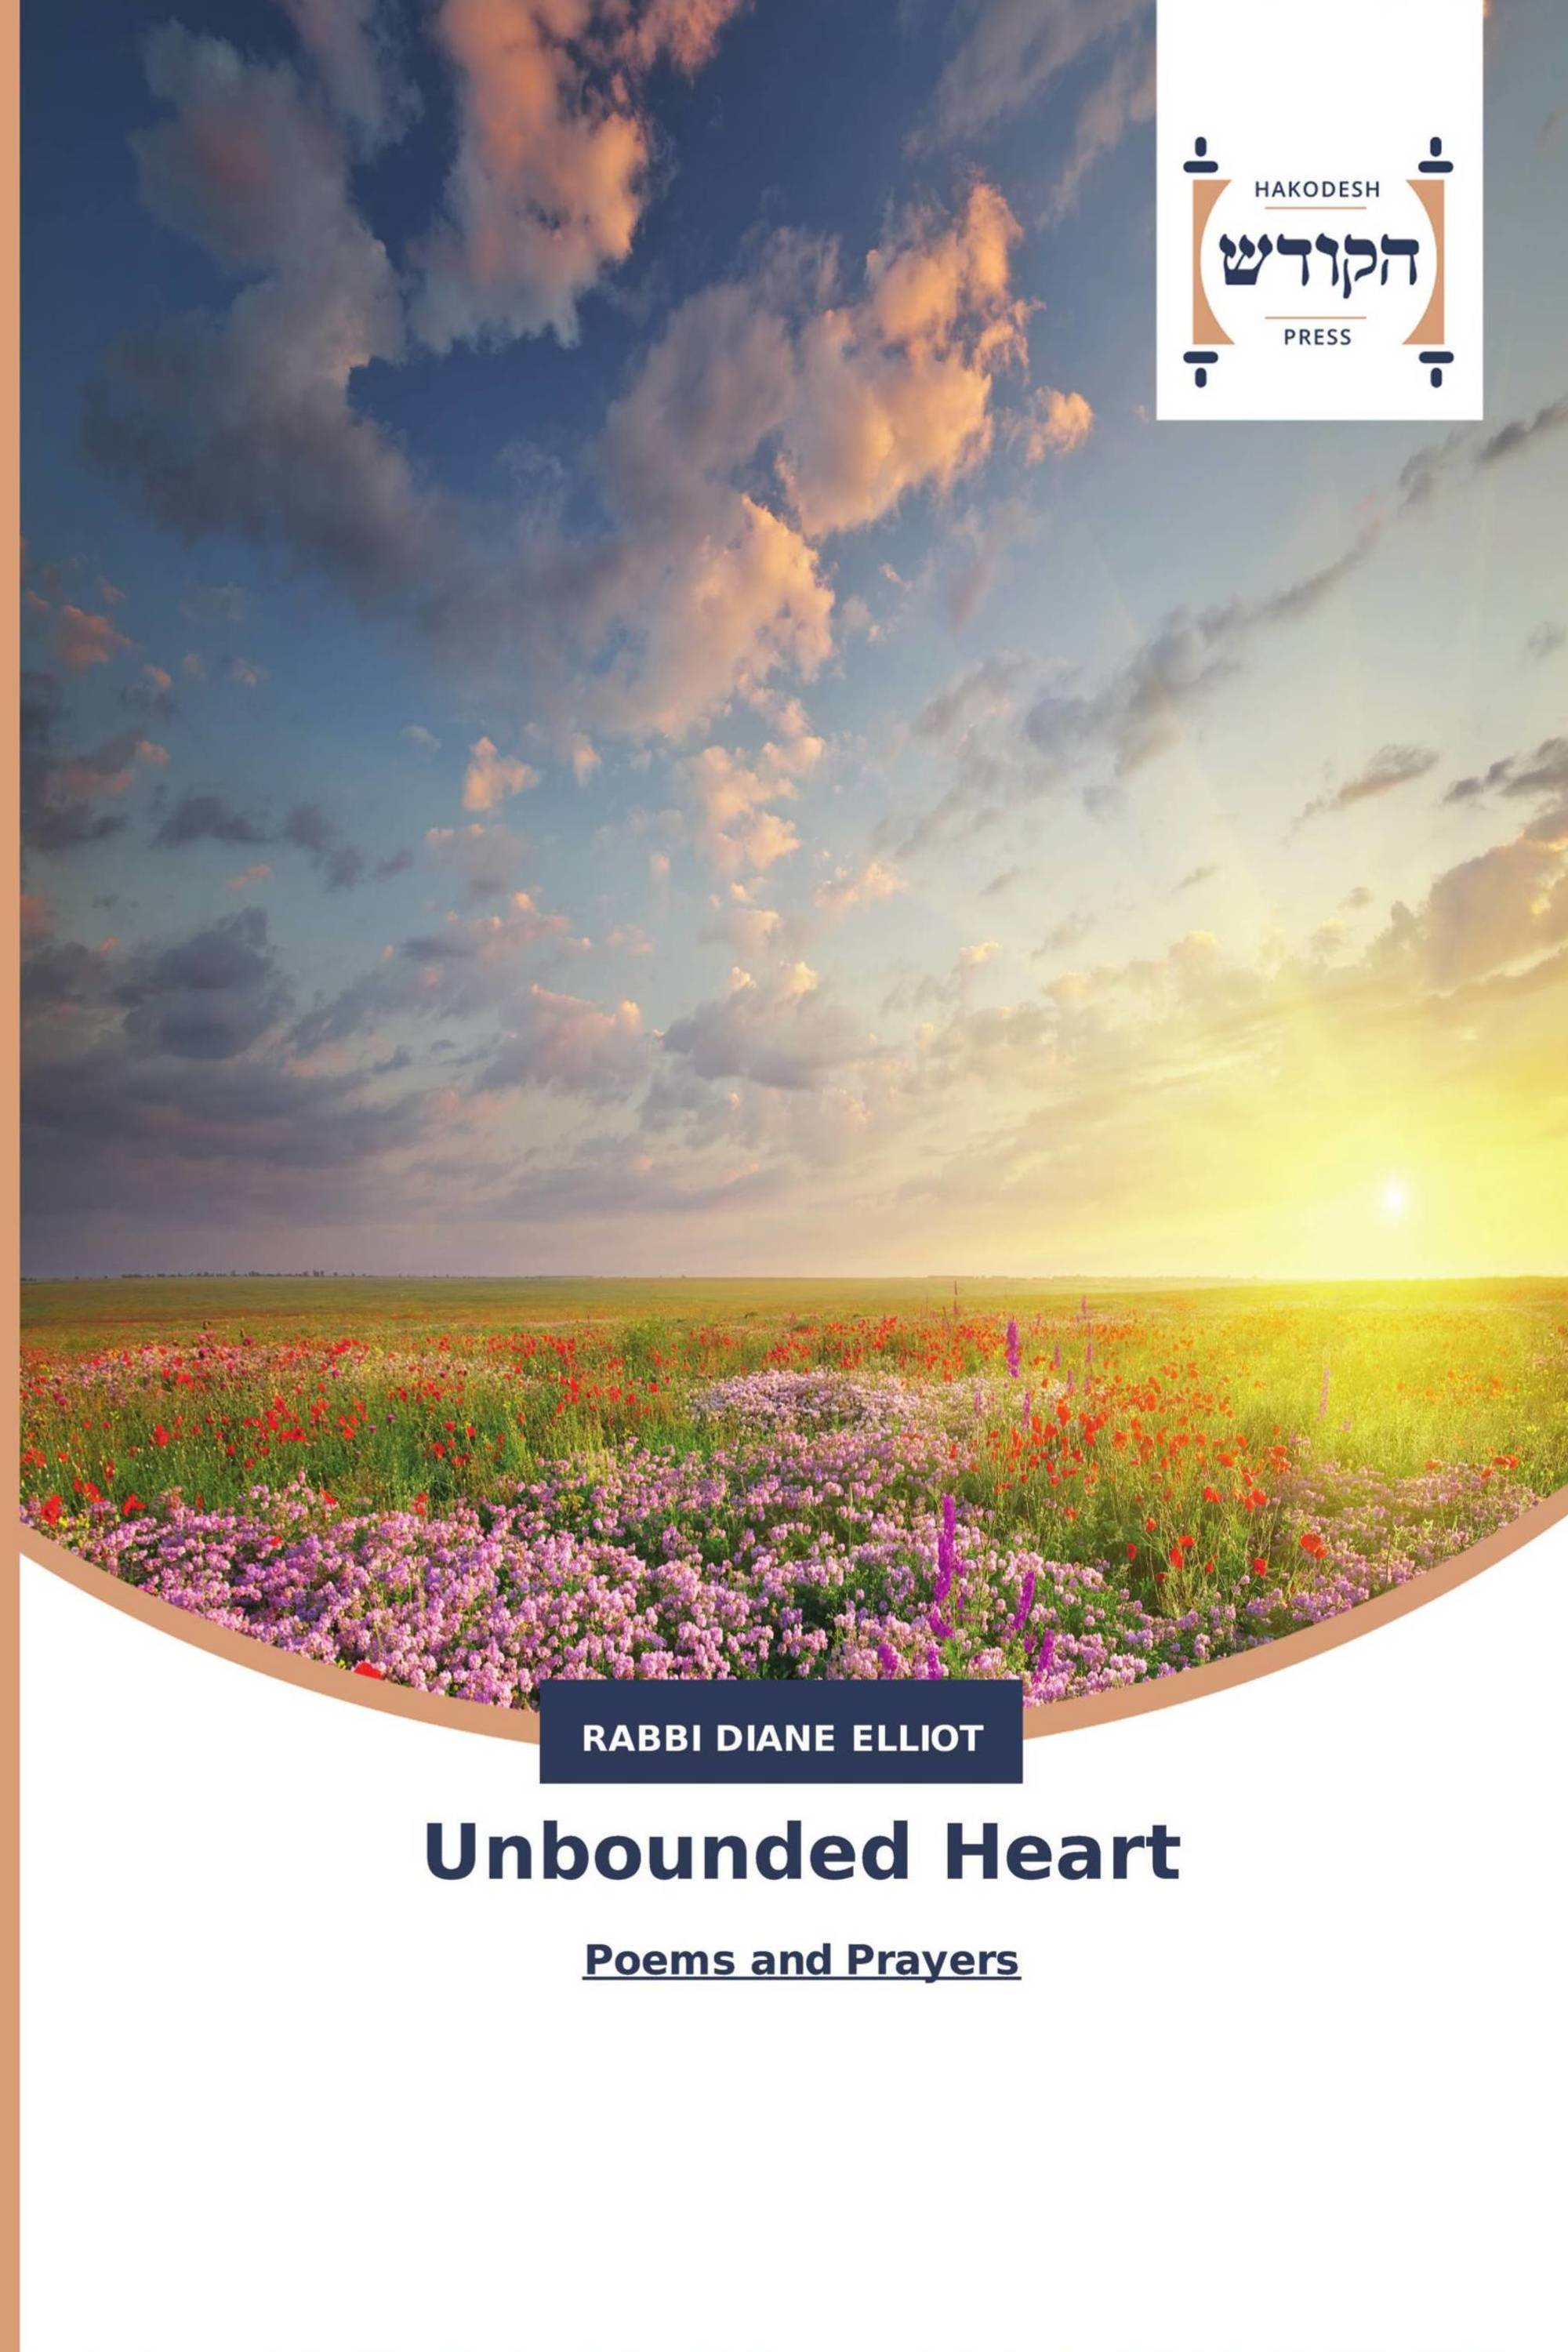 Unbounded Heart